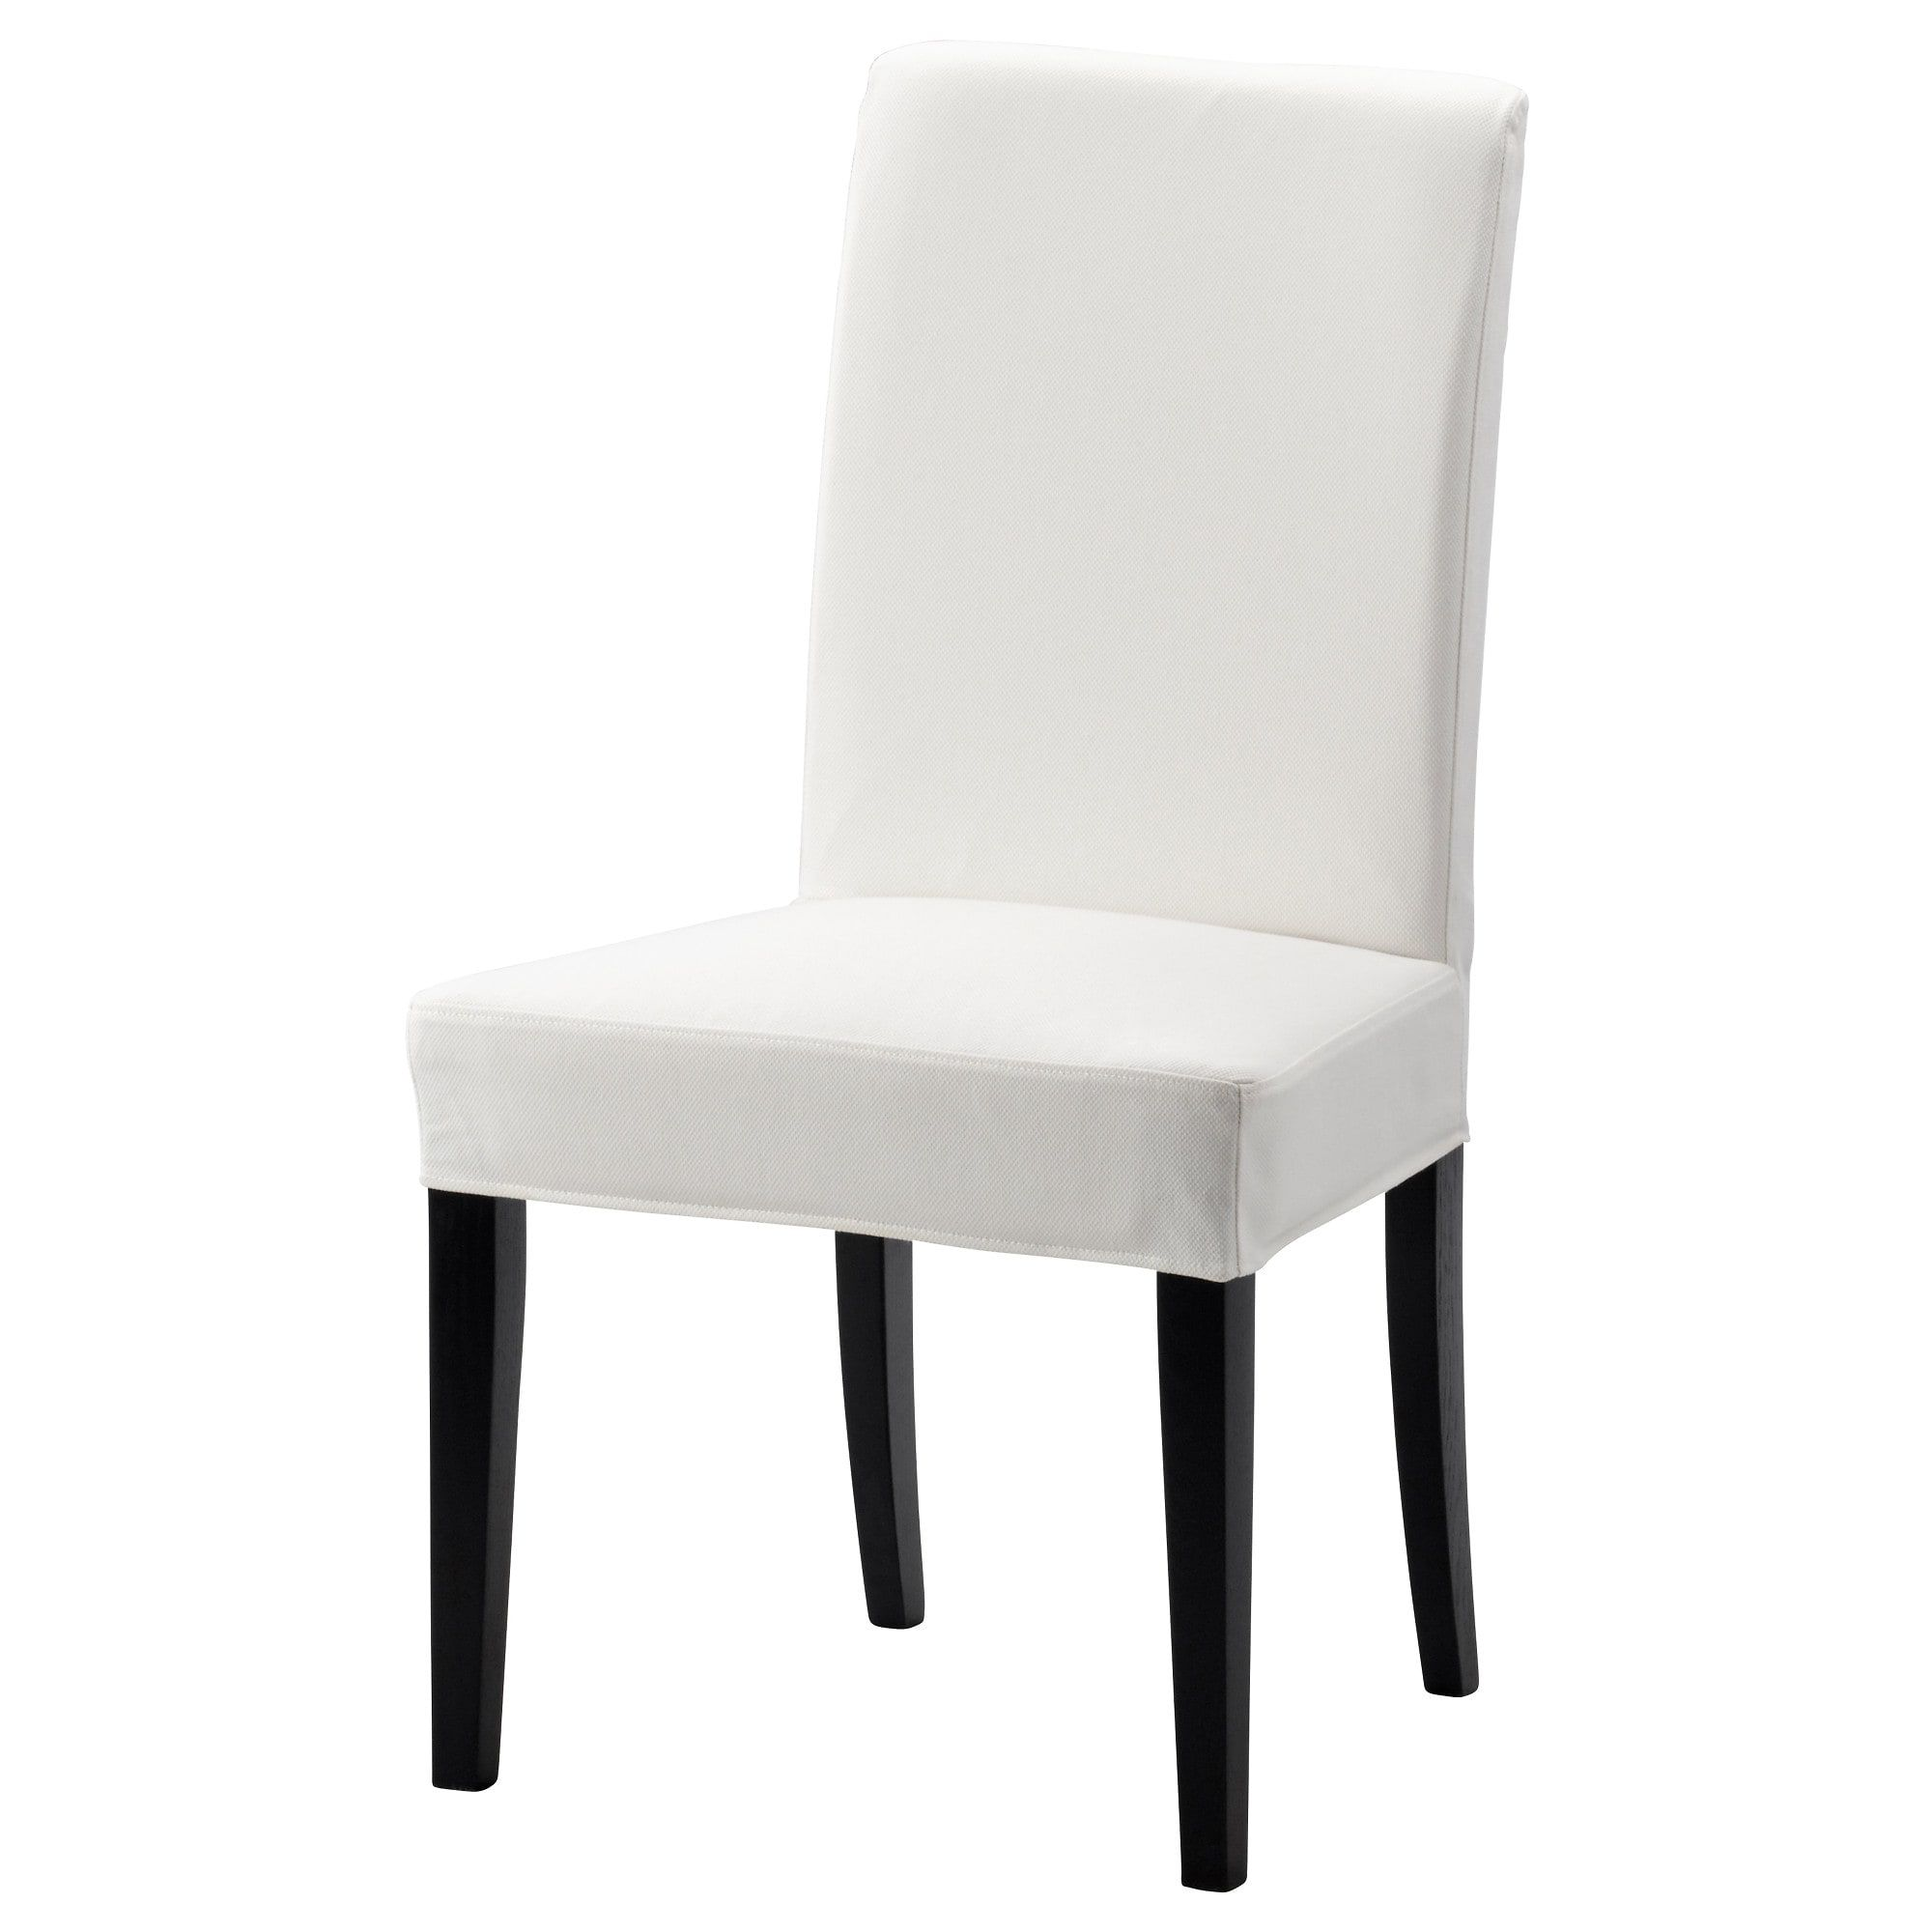 Esszimmerstühle Ikea Henriksdal Chair Gräsbo White Ikea Lake Furniture